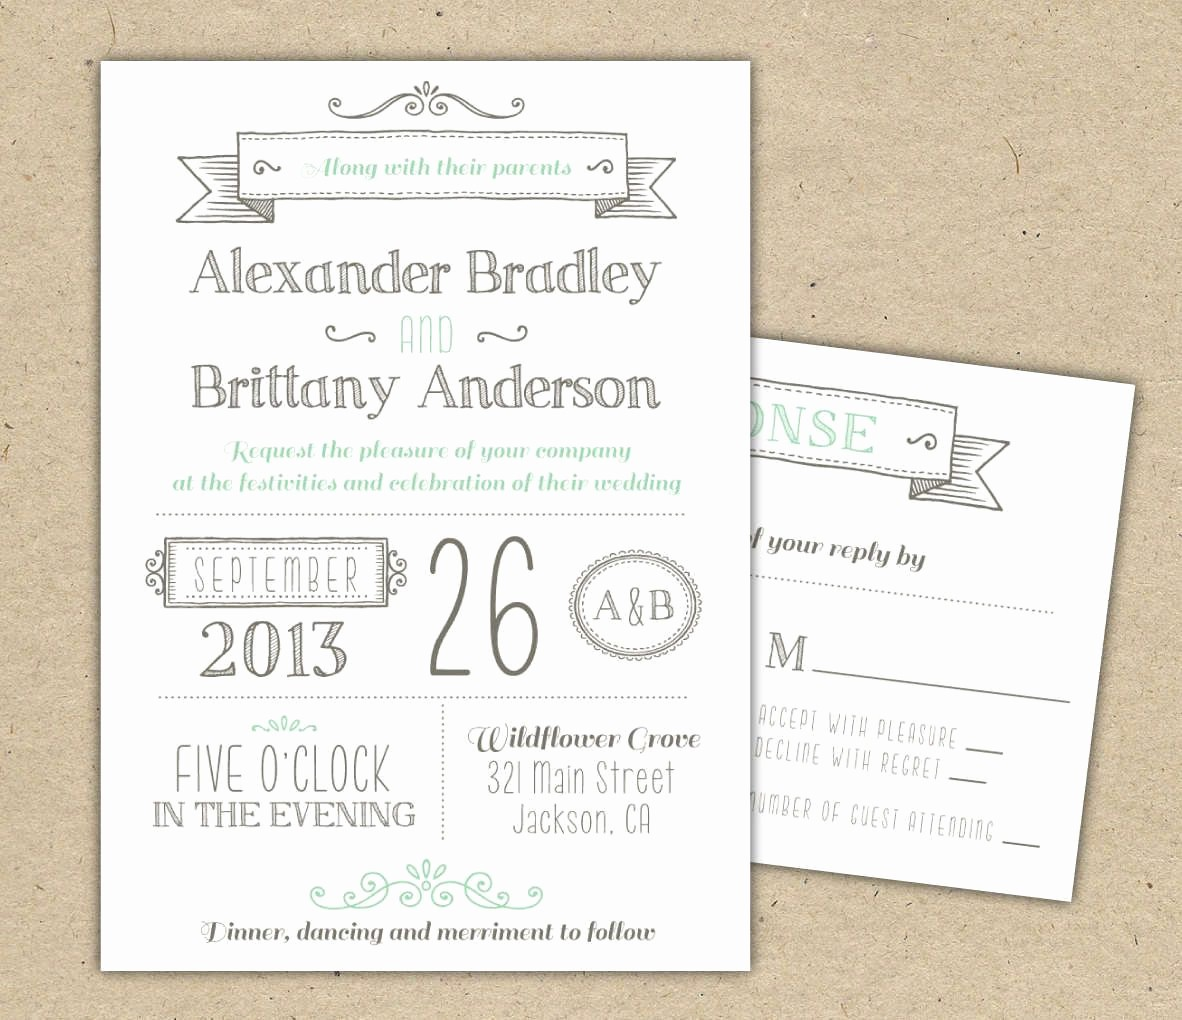 Wedding Invitation Template Word Free New Wedding Invitations Template Free Download